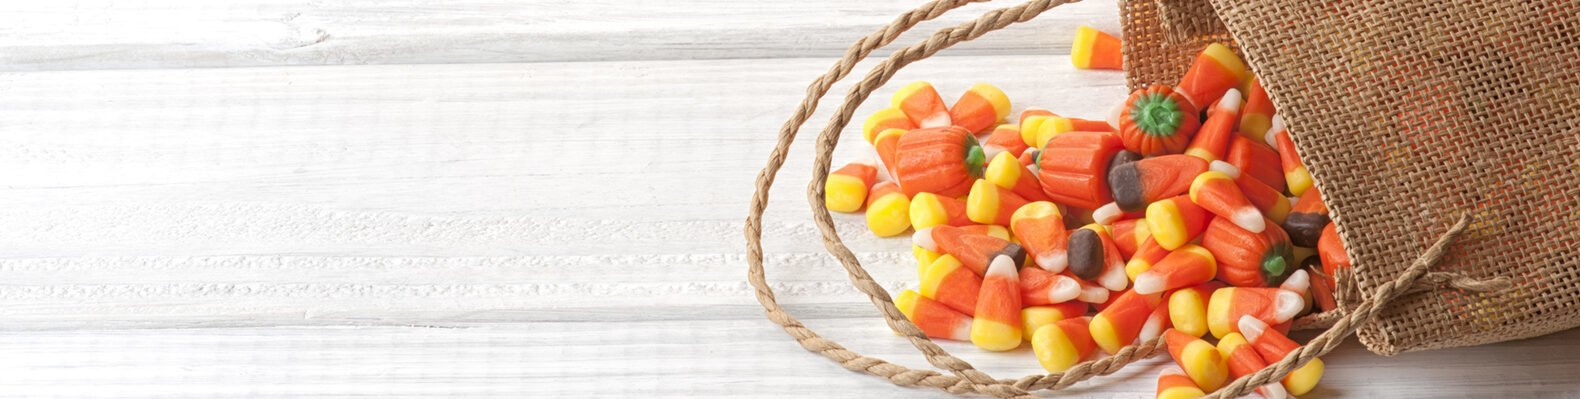 burlap bag of candy corn and pumpkins on white table